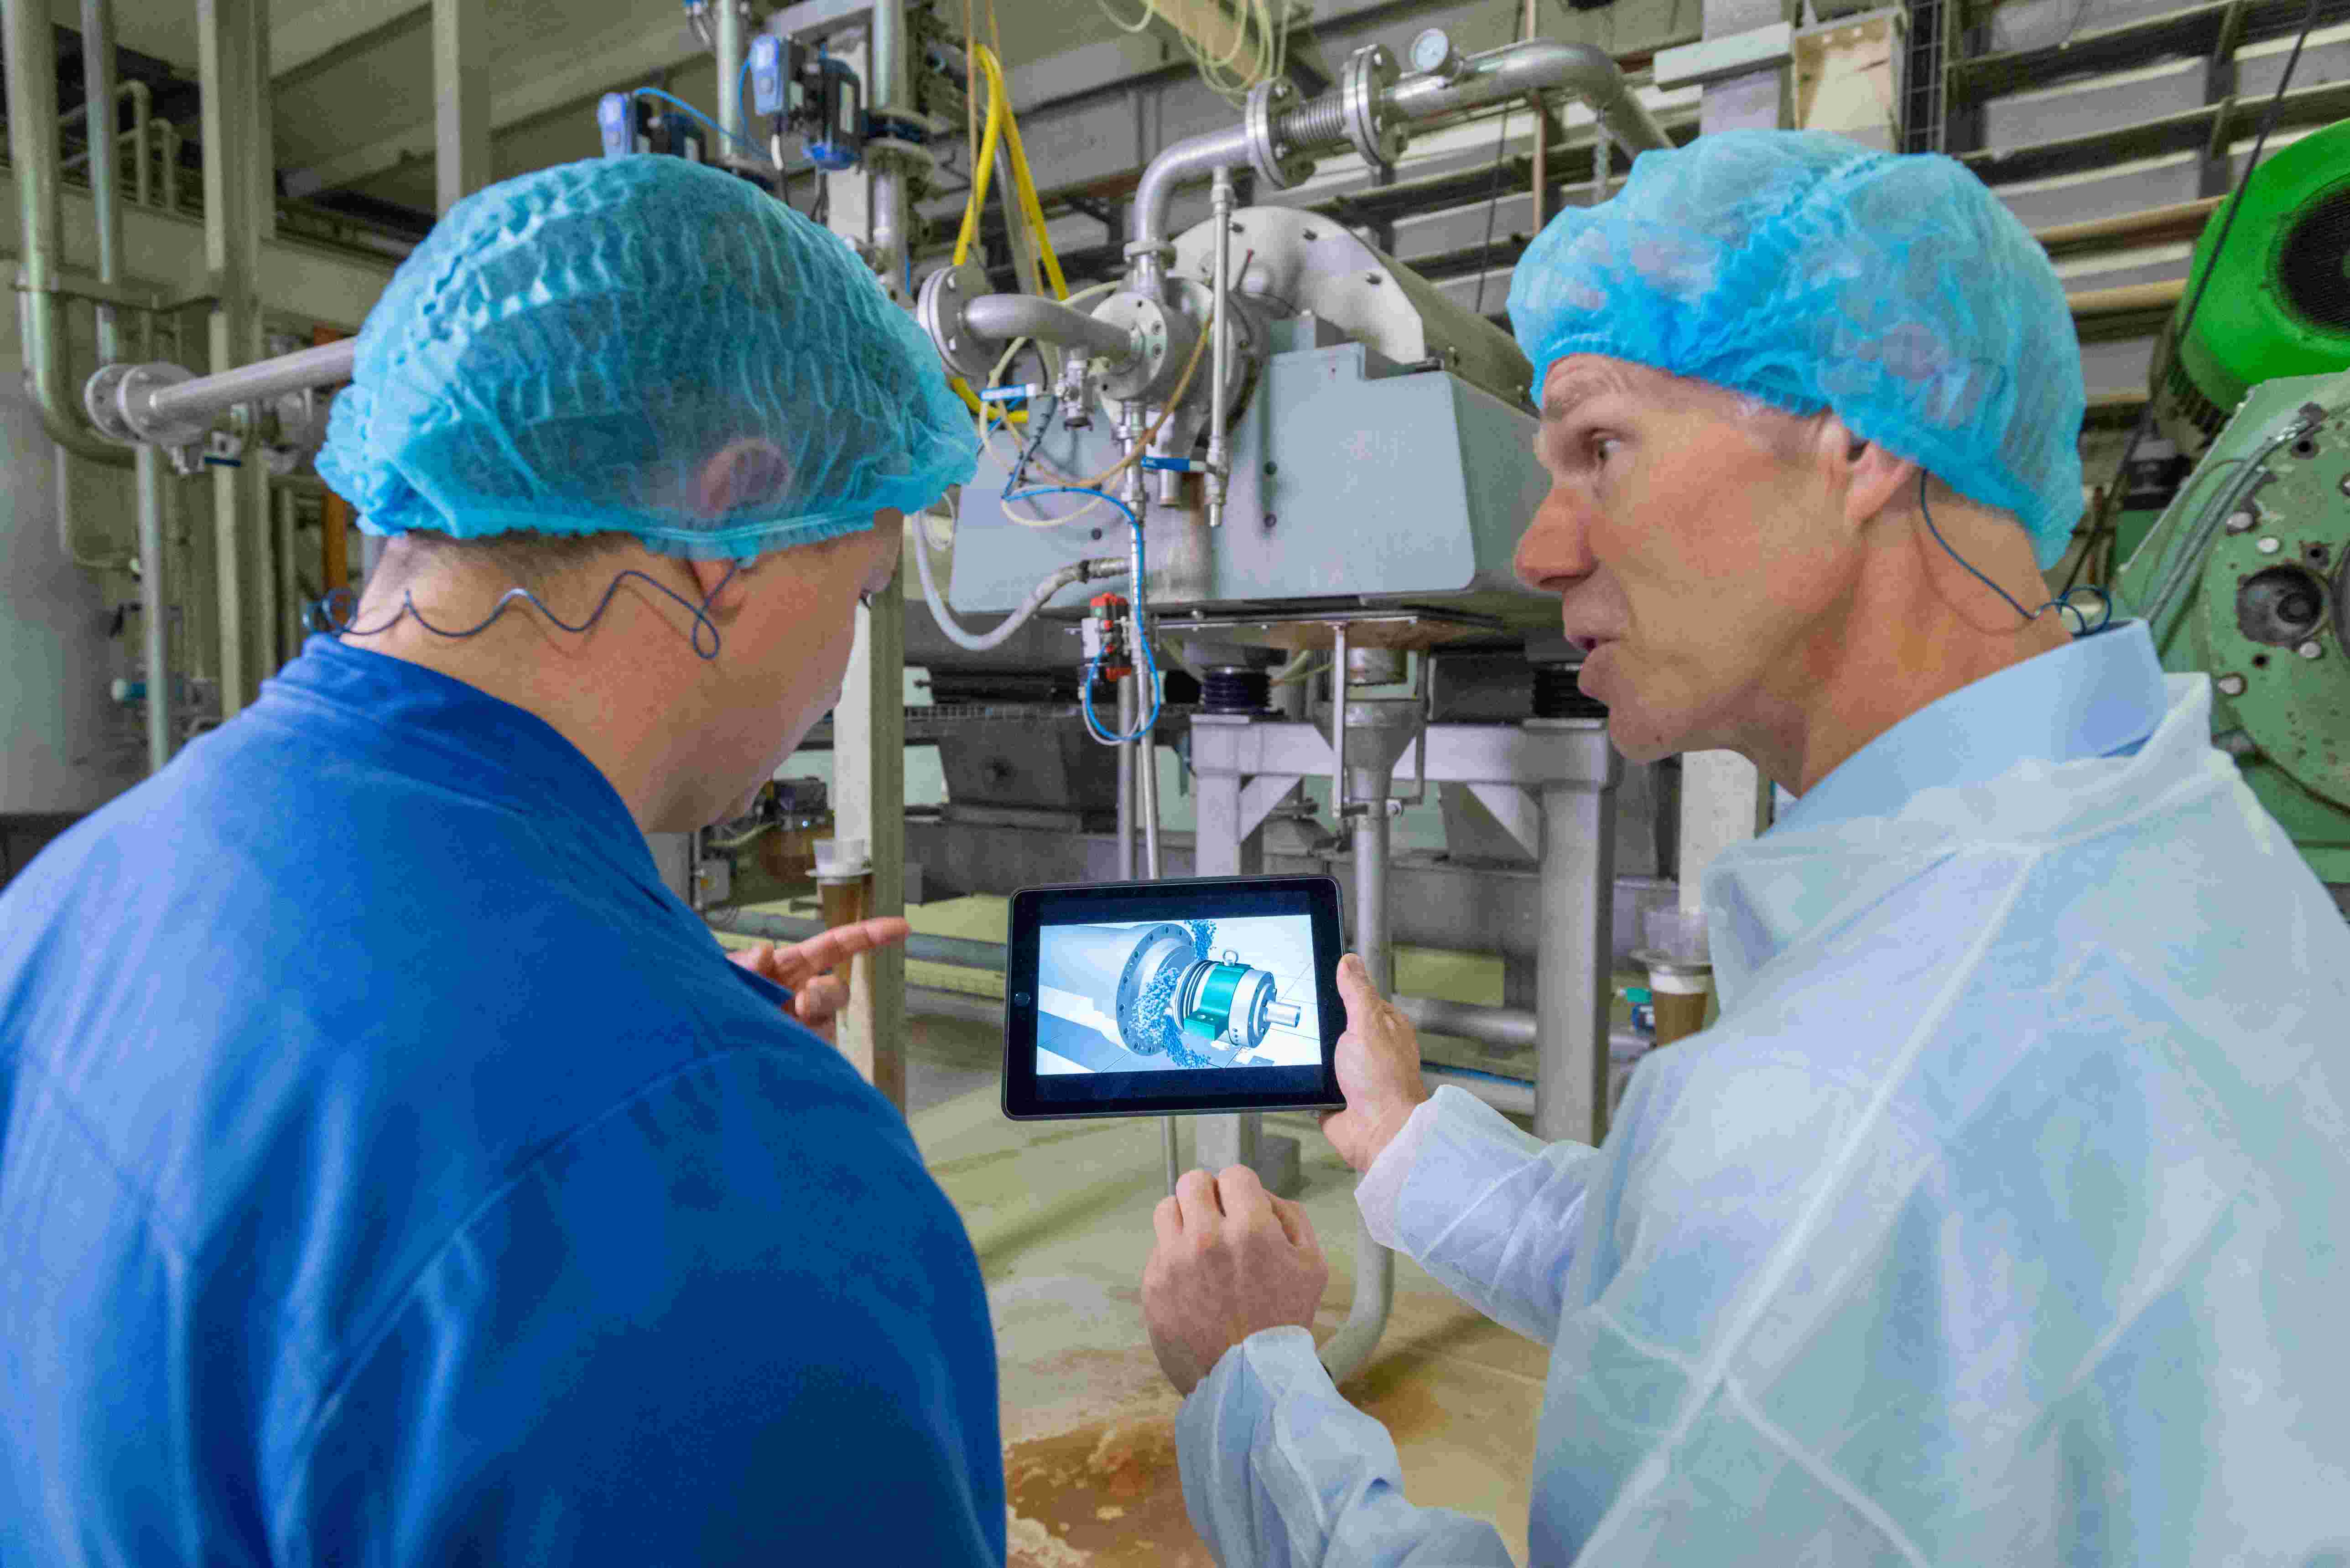 Emsland Group once again chooses GEA to build a modern protein process line in Wietzendorf